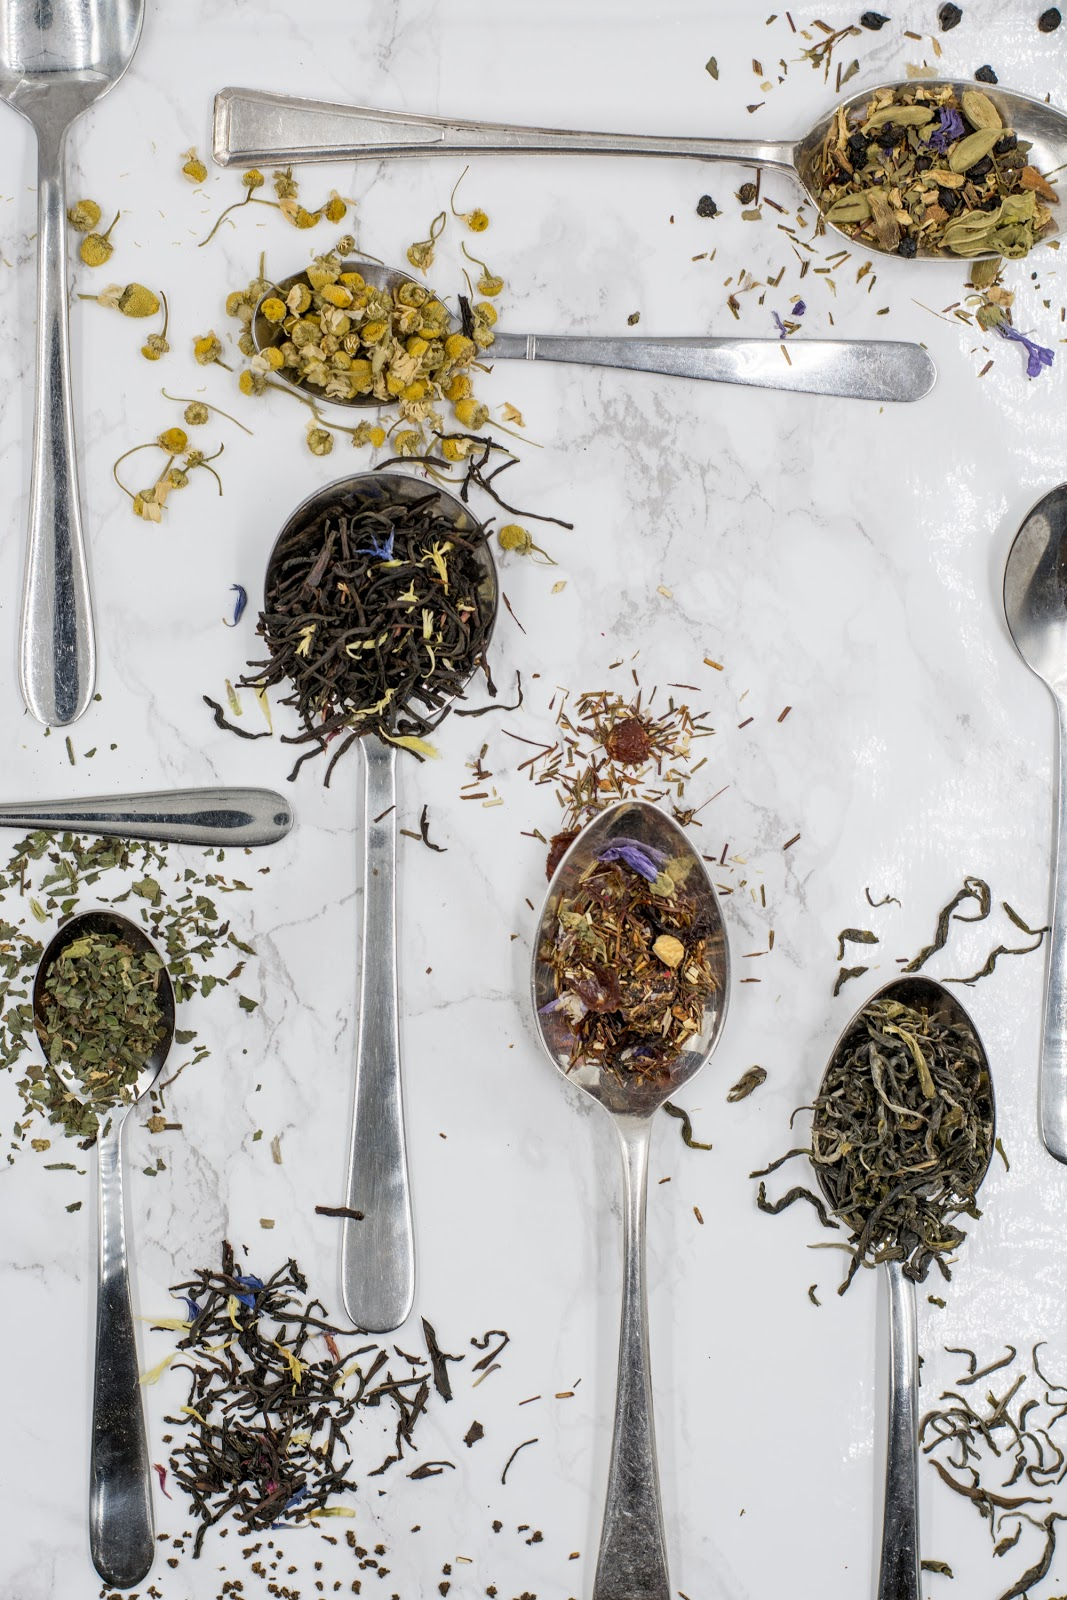 Tea Blends Unsplash 1